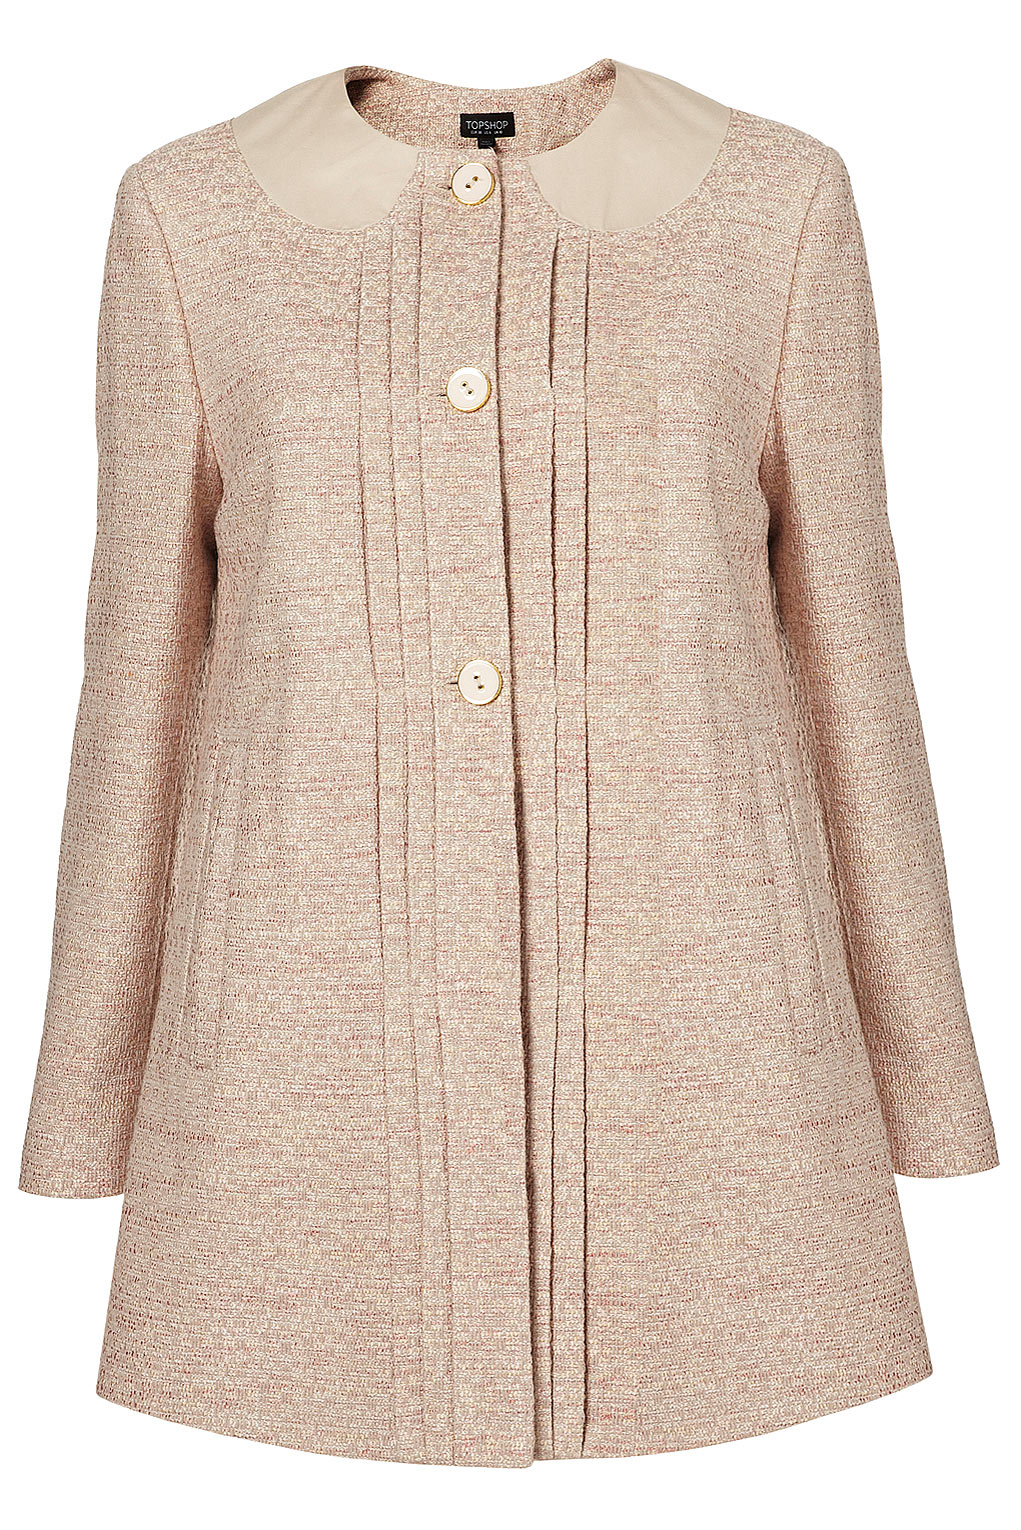 Topshop Lightweight Tweed Swing Coat in Pink | Lyst